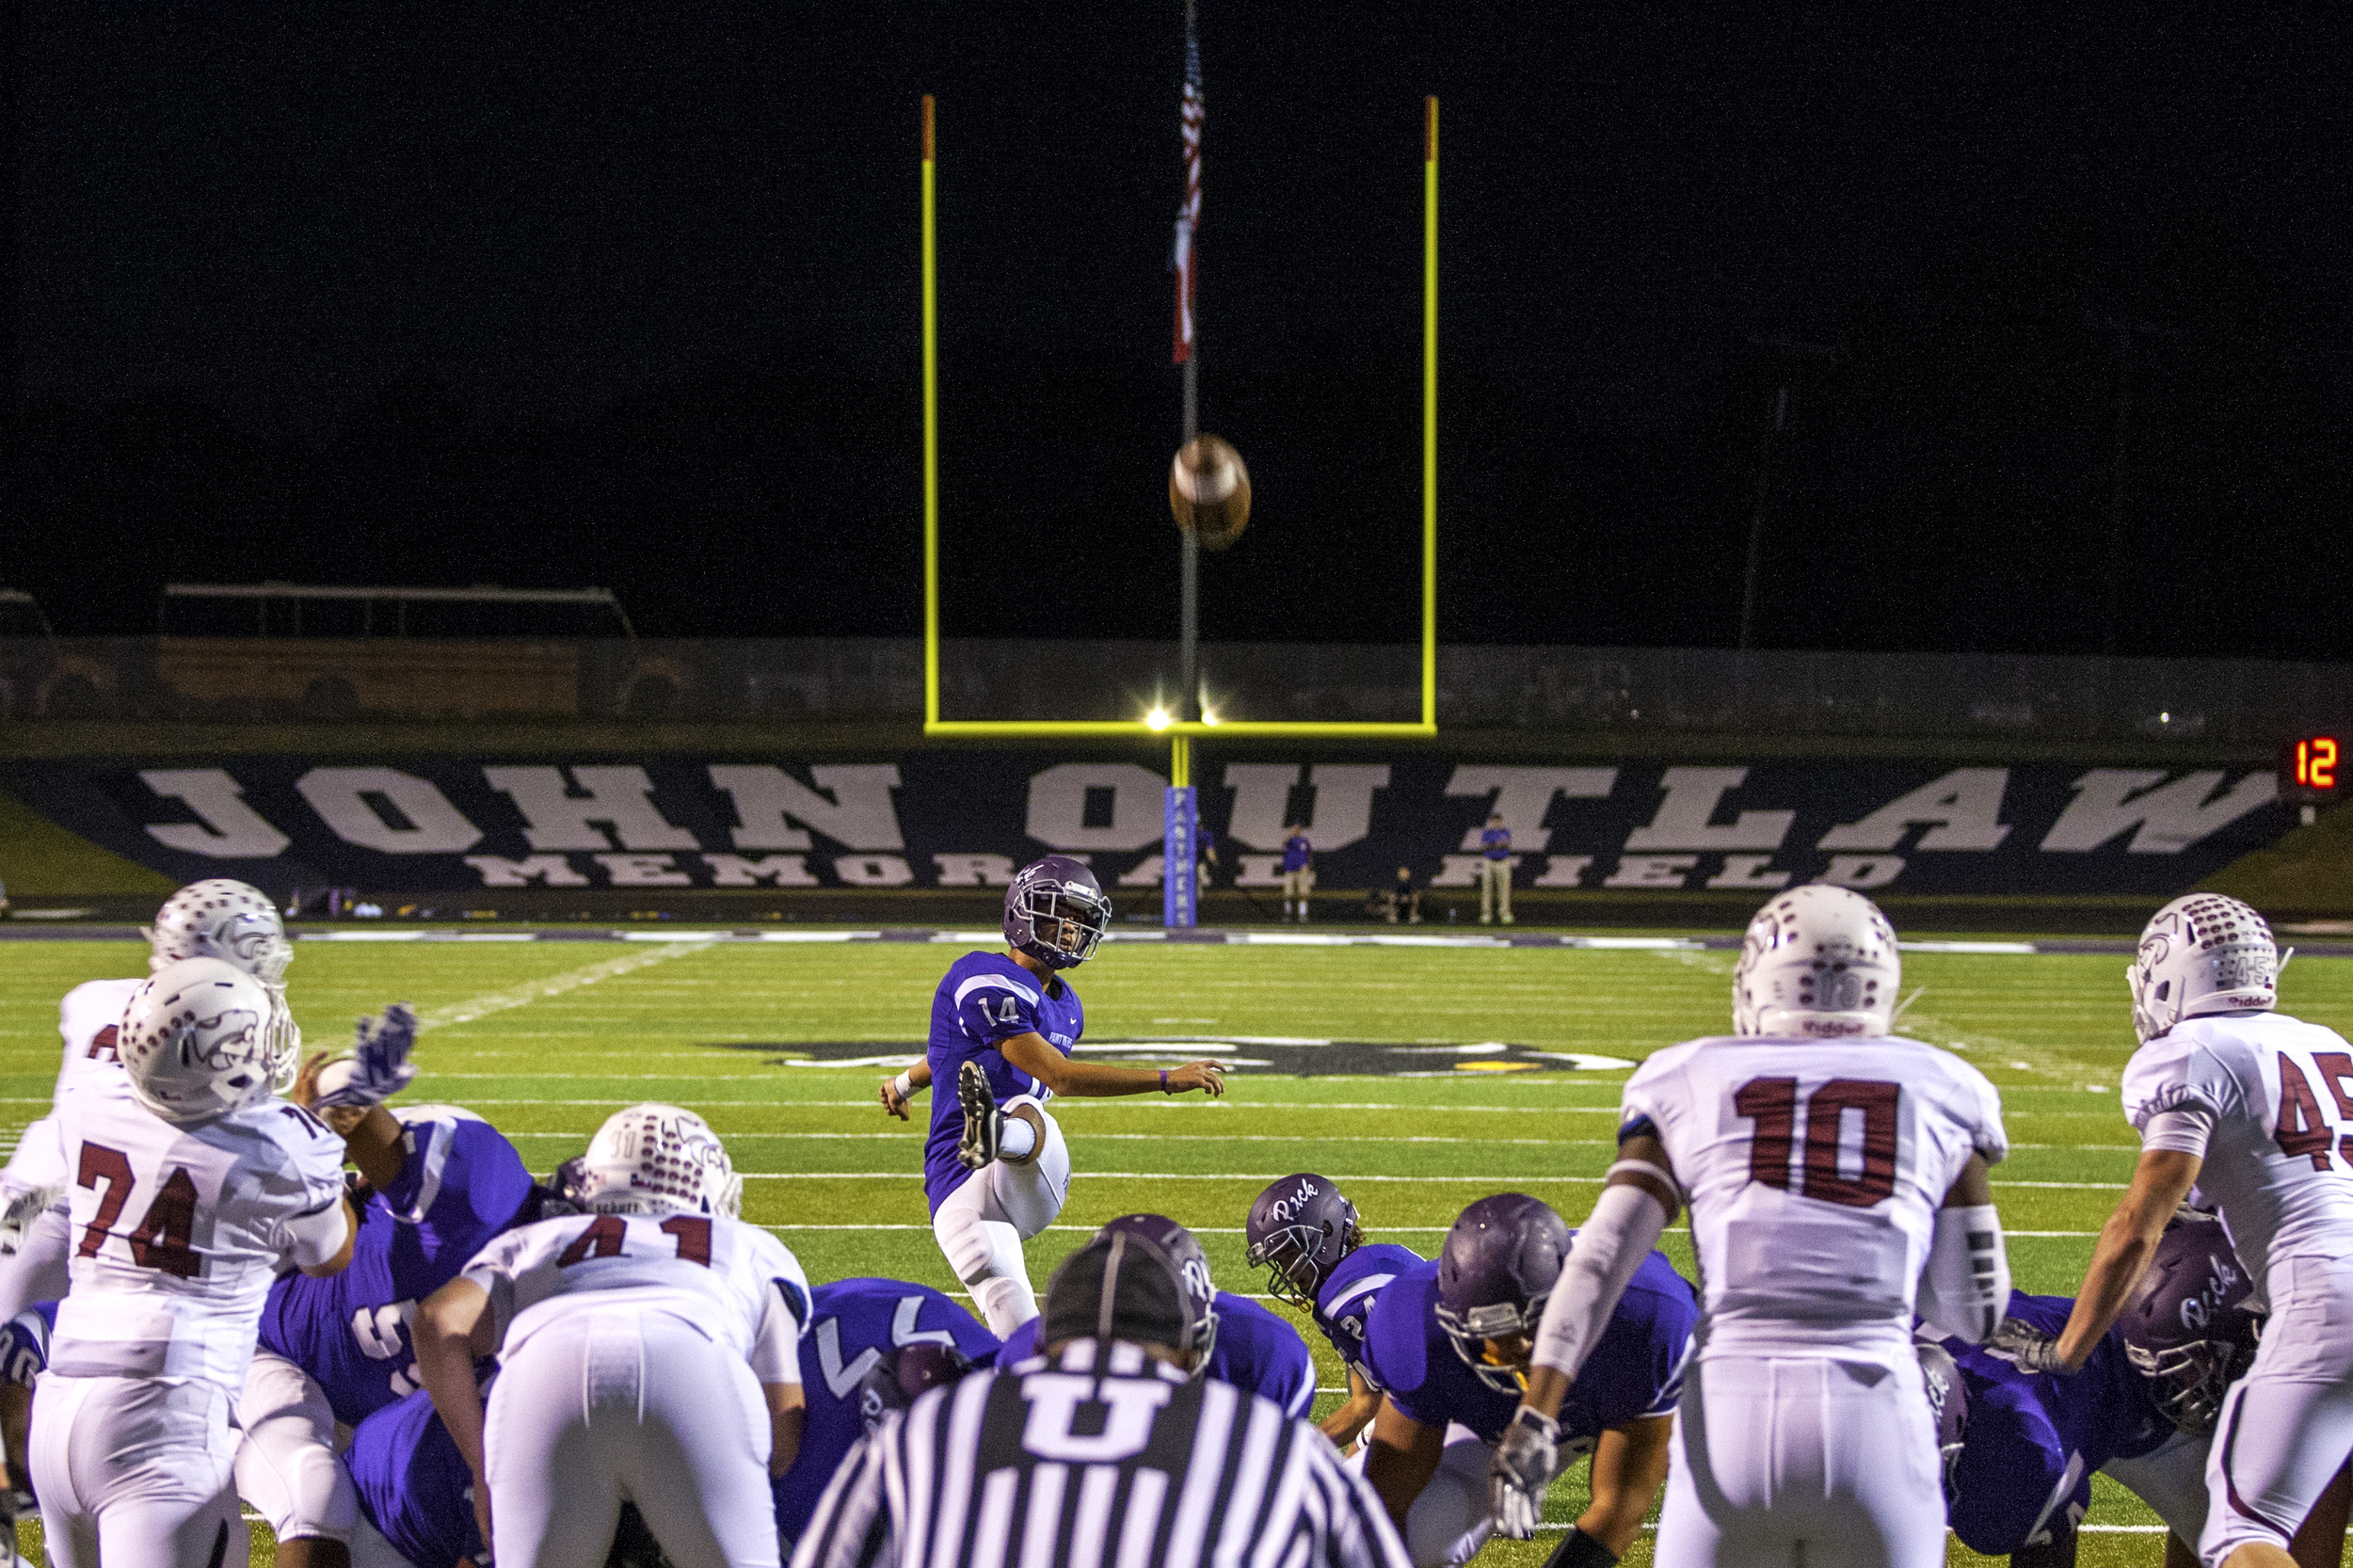 Lufkin High School kicker Javier Montes (14) converts a point-after-touchdown during first quarter action of the Pack's homecoming football game against Whitehouse played on Oct. 3, 2014 at Abe Martin Stadium in Lufkin, Texas. Lufkin was rocked in late 2011 when it received the news that John Outlaw, its head coach for 17 years, passed away after a heart attack. Soon after, the Panther community dedicated its playing field to head coach John Outlaw, and since 2012 the Pack has played its games at John Outlaw Memorial Field at Abe Martin Stadium. Outlaw's legacy at Lufkin includes over 160 games won, three trips to the state semi-finals and a state championship victory in 2001.